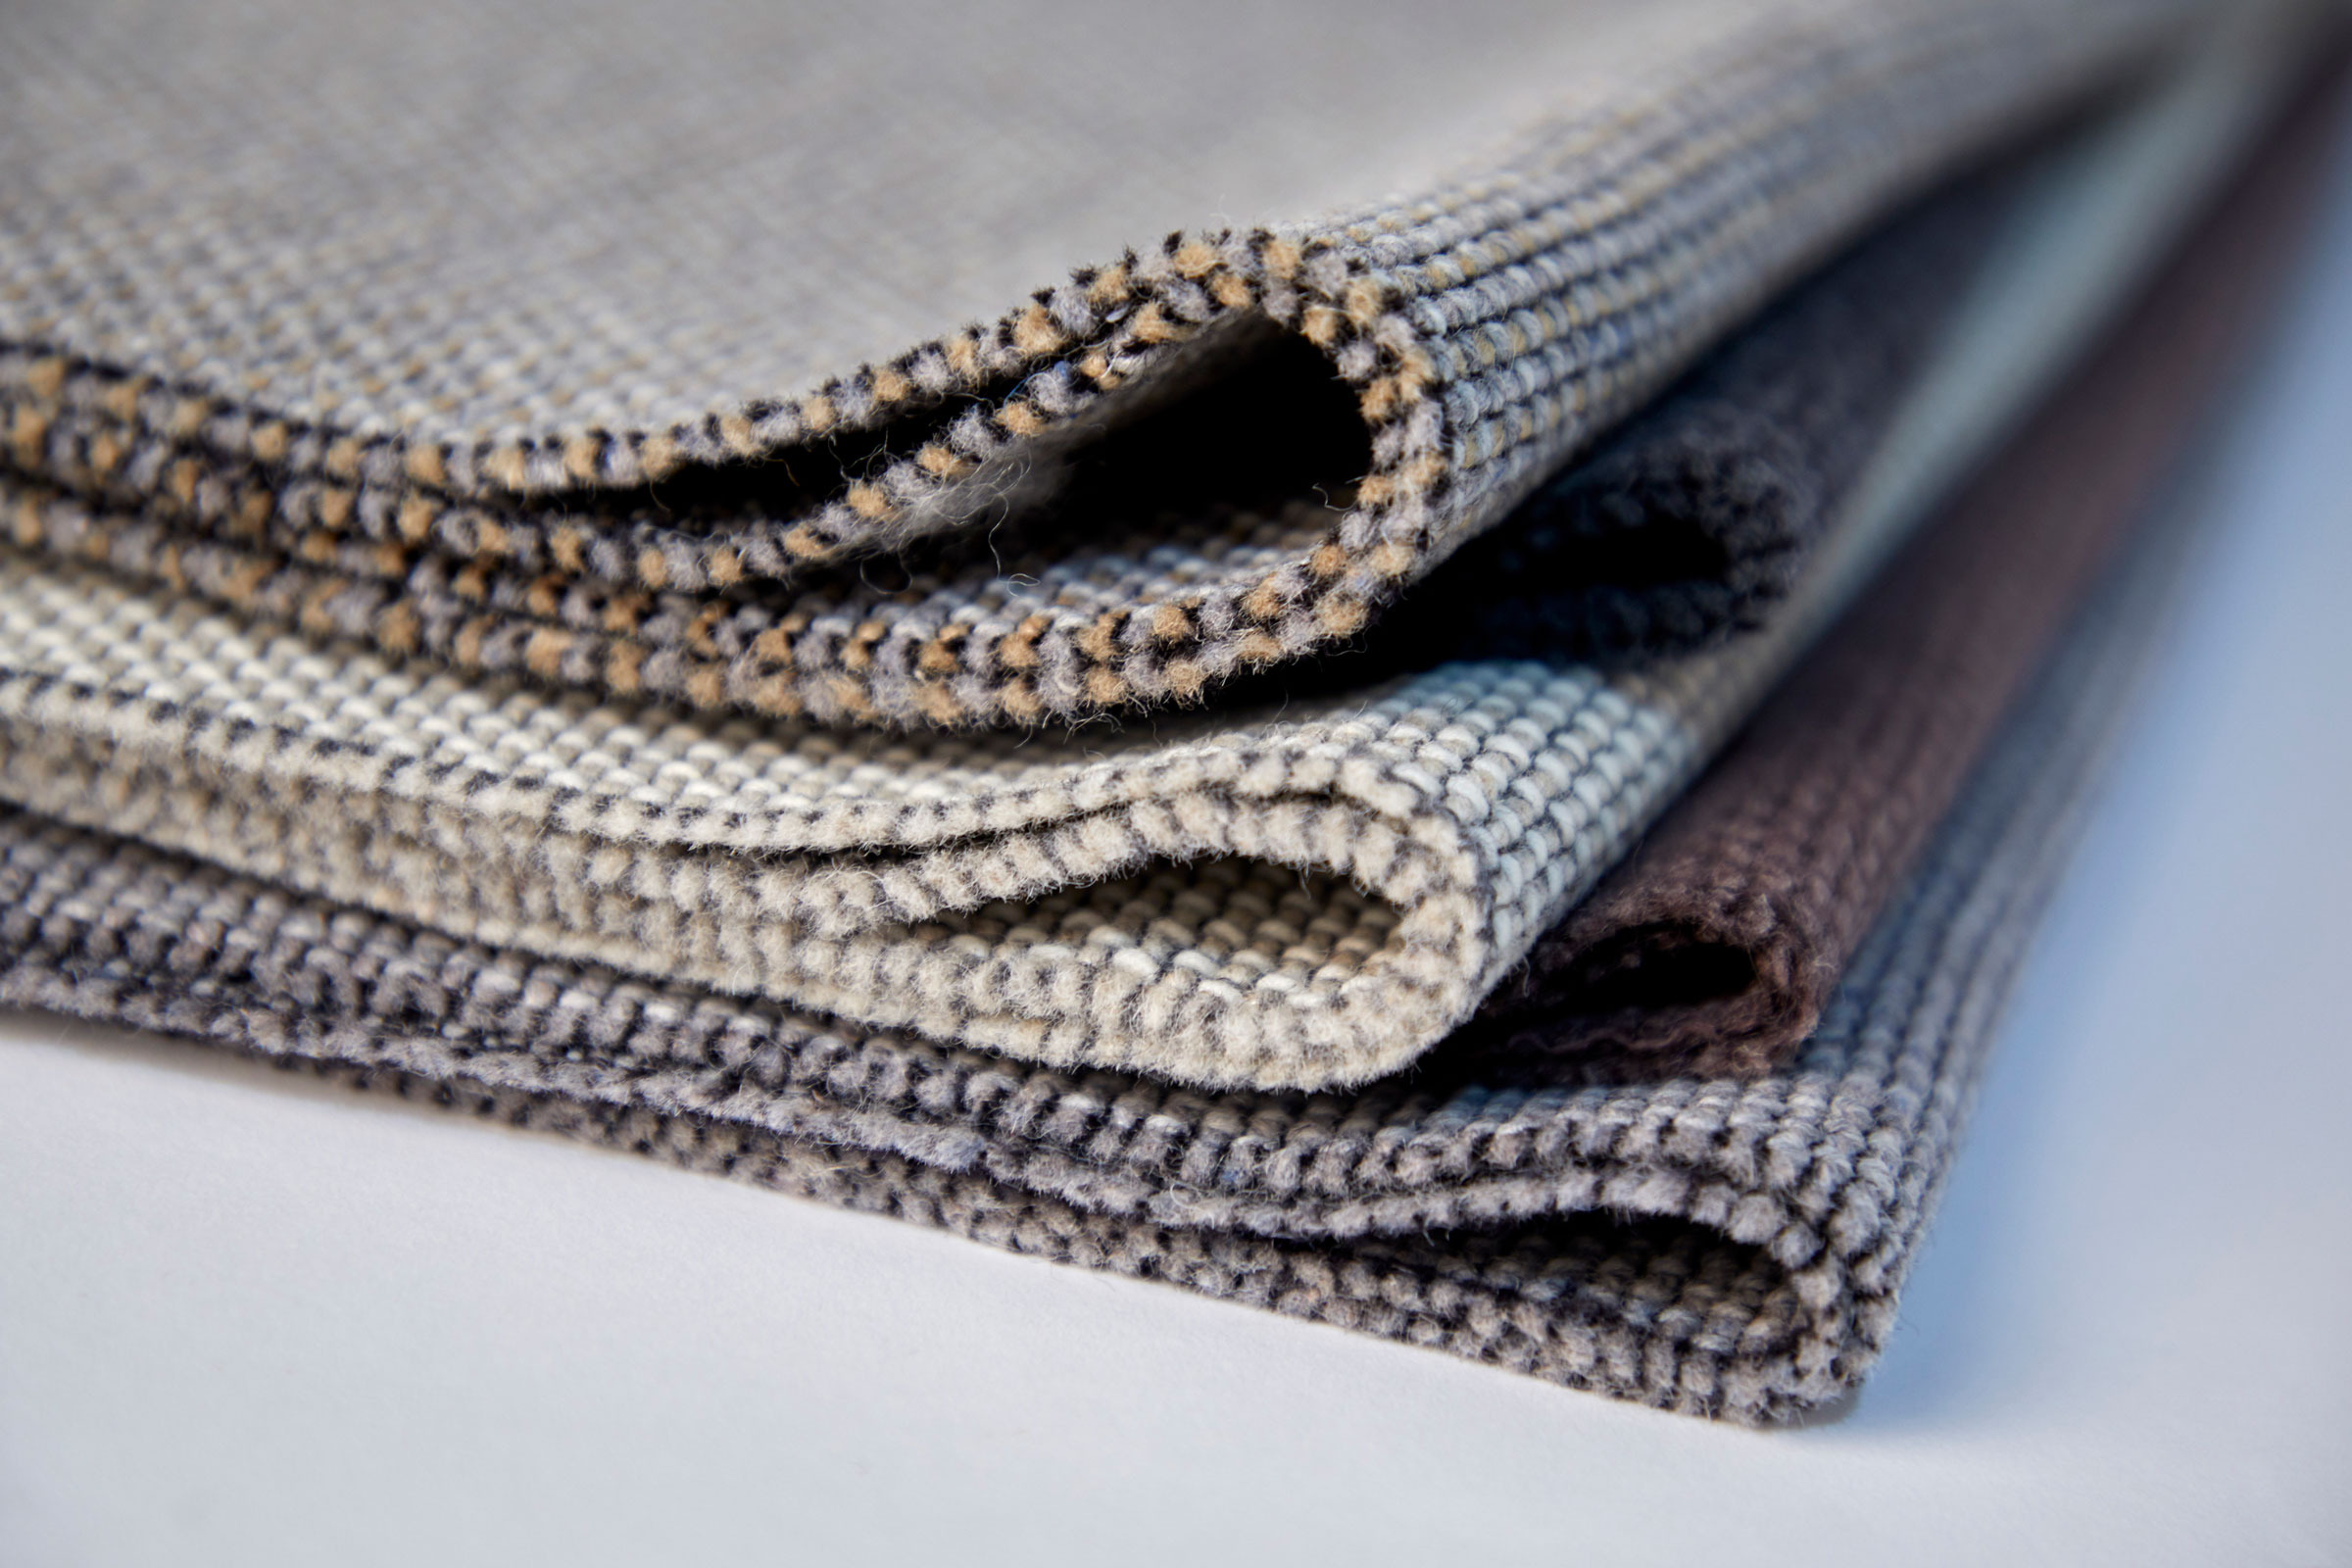 camira textured fabric gbd magazine 04